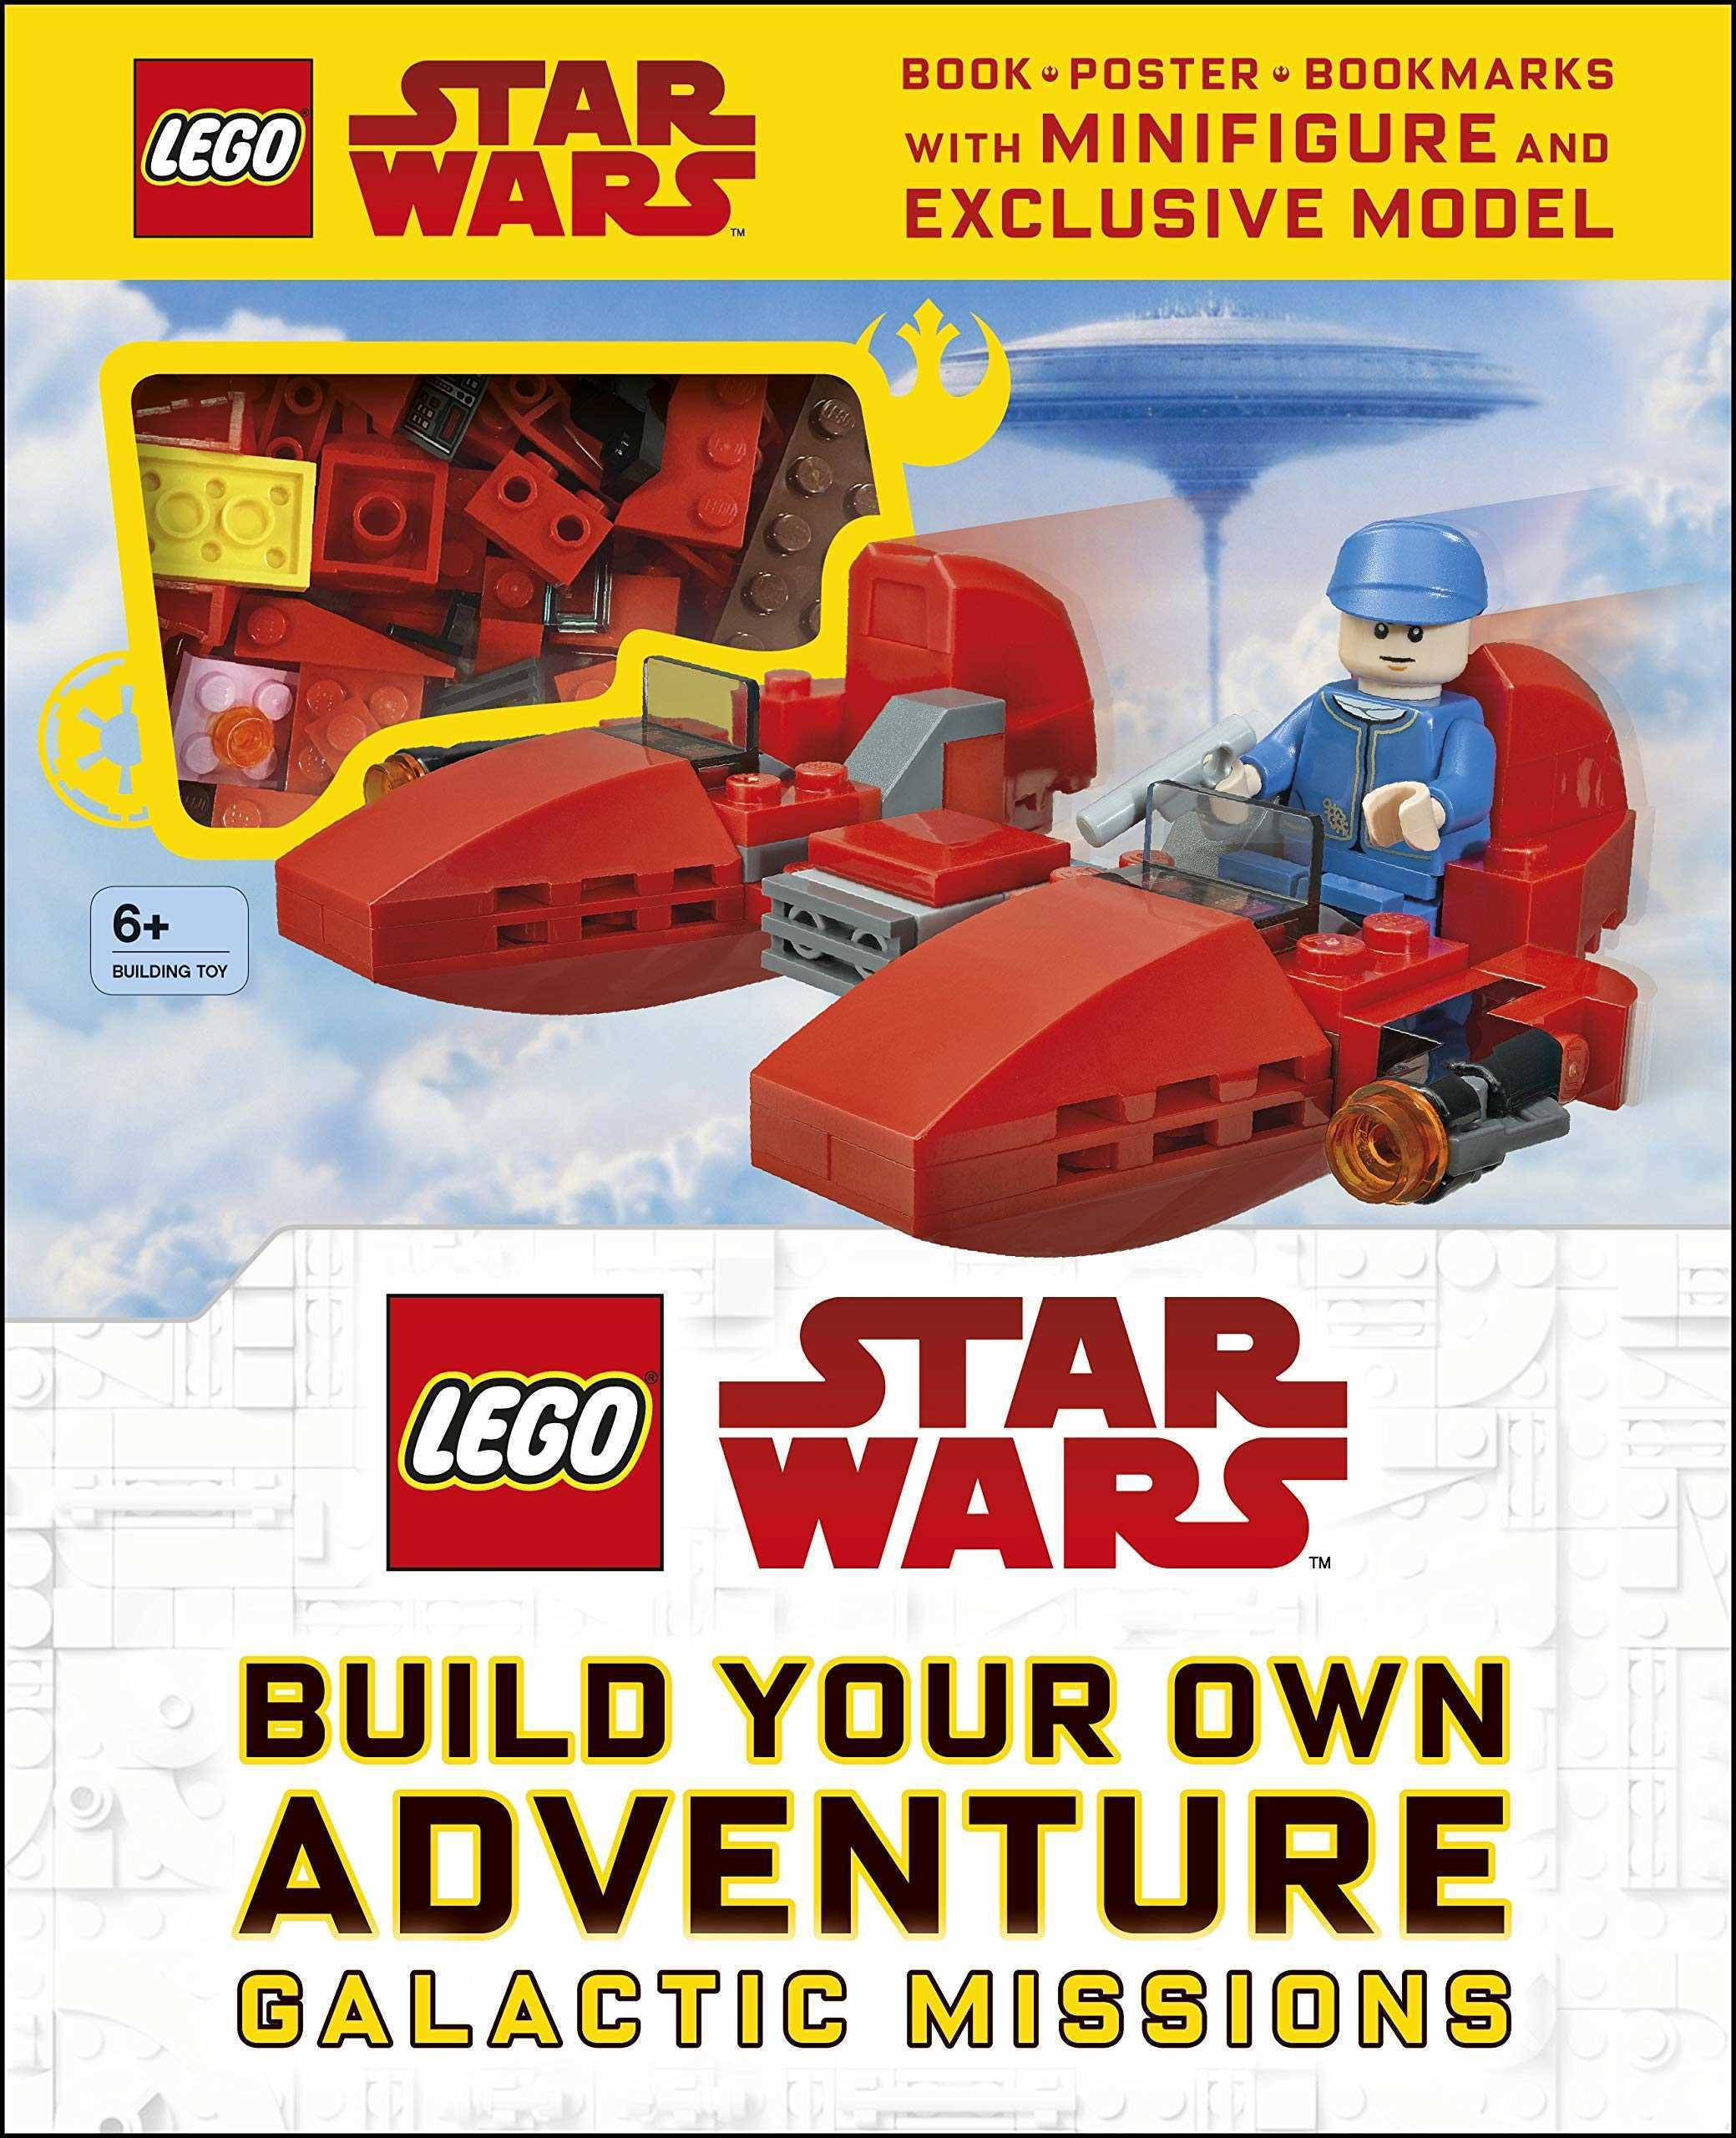 LEGO Star Wars Build Your Own Adventure Galactic Missions (with LEGO Star Wars Minifigure and Exclusive Model)